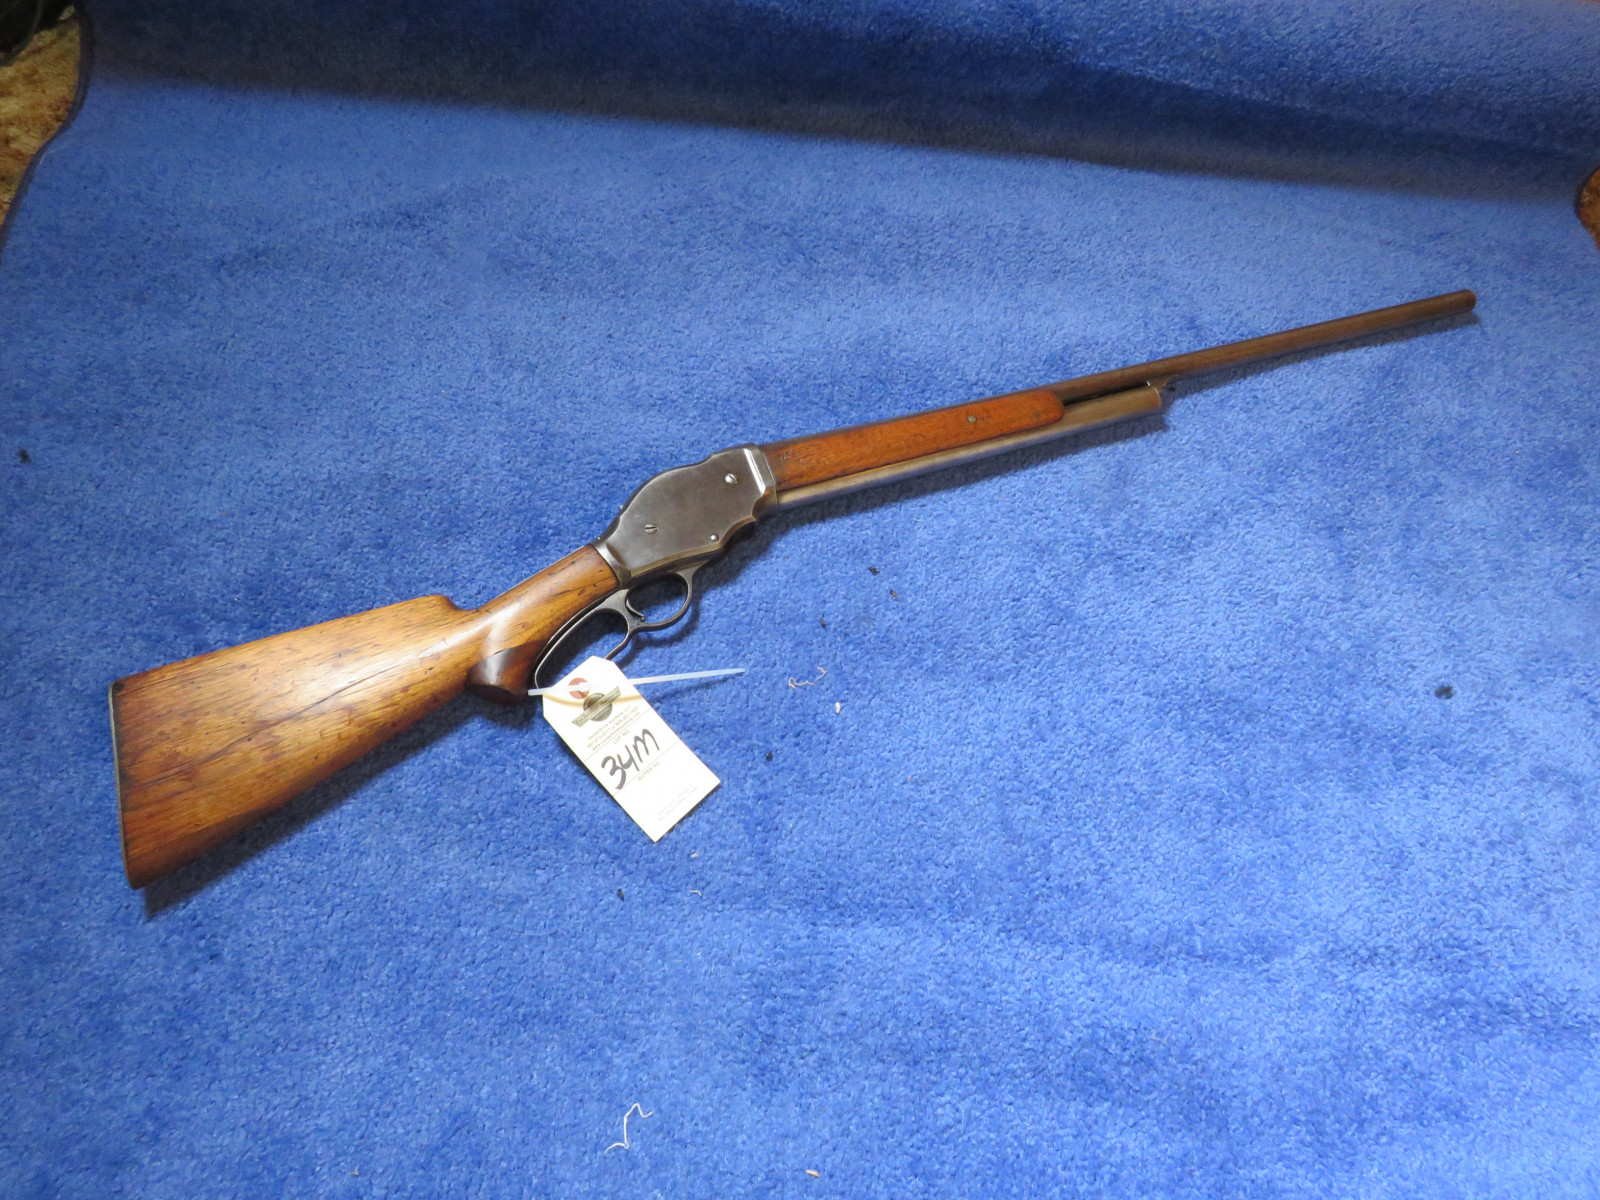 Winchester Repeating Arms Lever Action Shotgun - Image 1